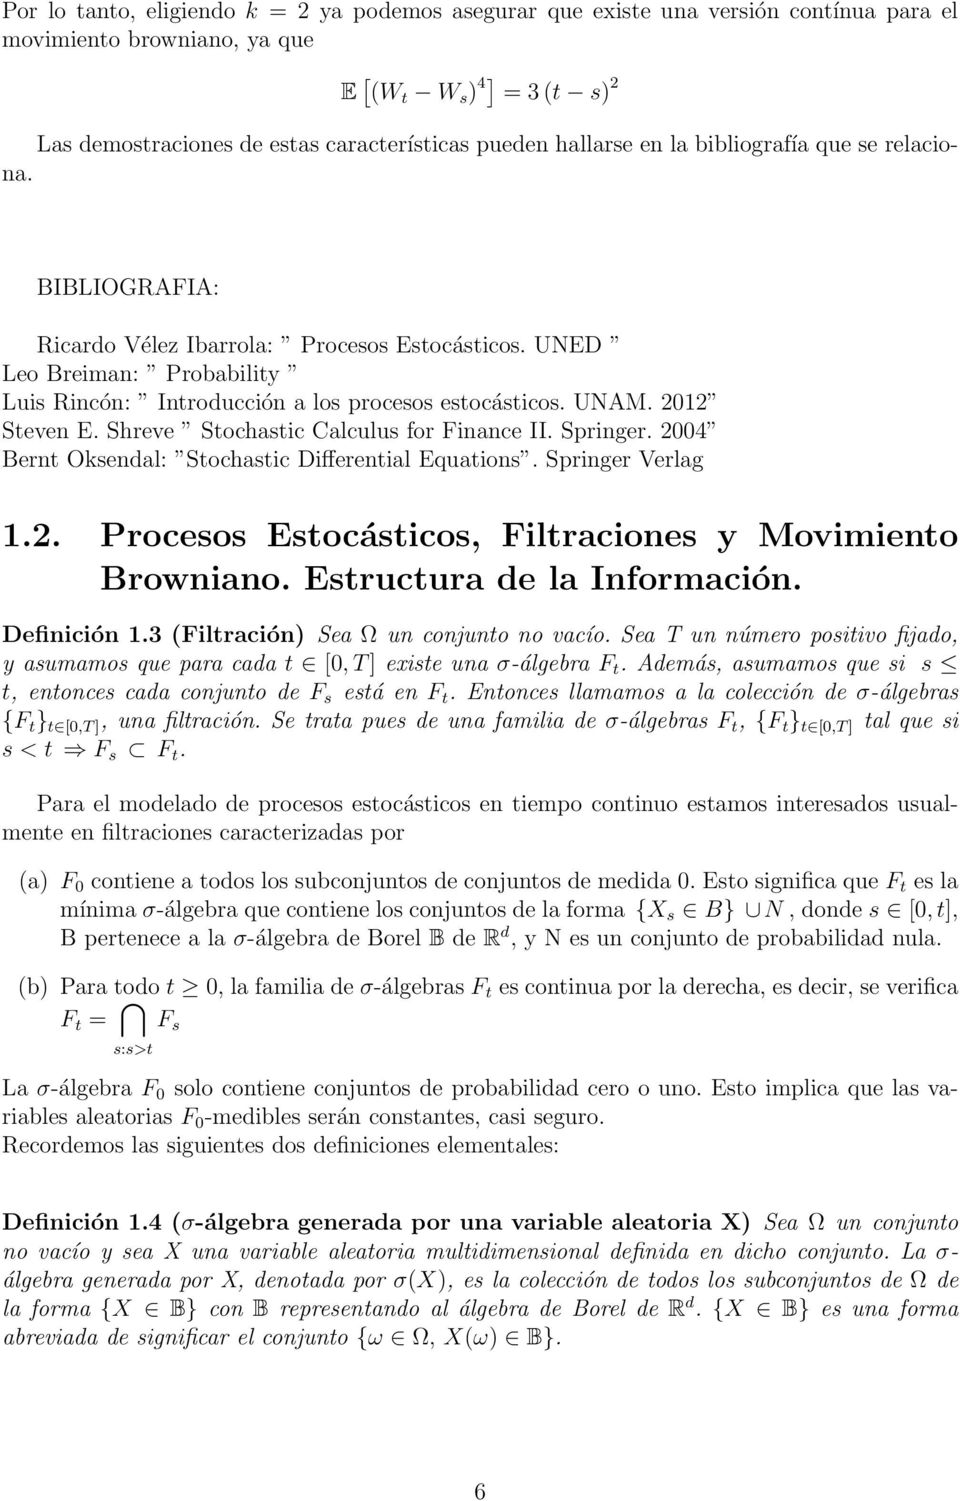 Shreve Sochasic Calculus for Finance II. Springer. 24 Bern Oksendal: Sochasic Differenial Equaions. Springer Verlag 1.2. Procesos Esocásicos, Filraciones y Movimieno Browniano.